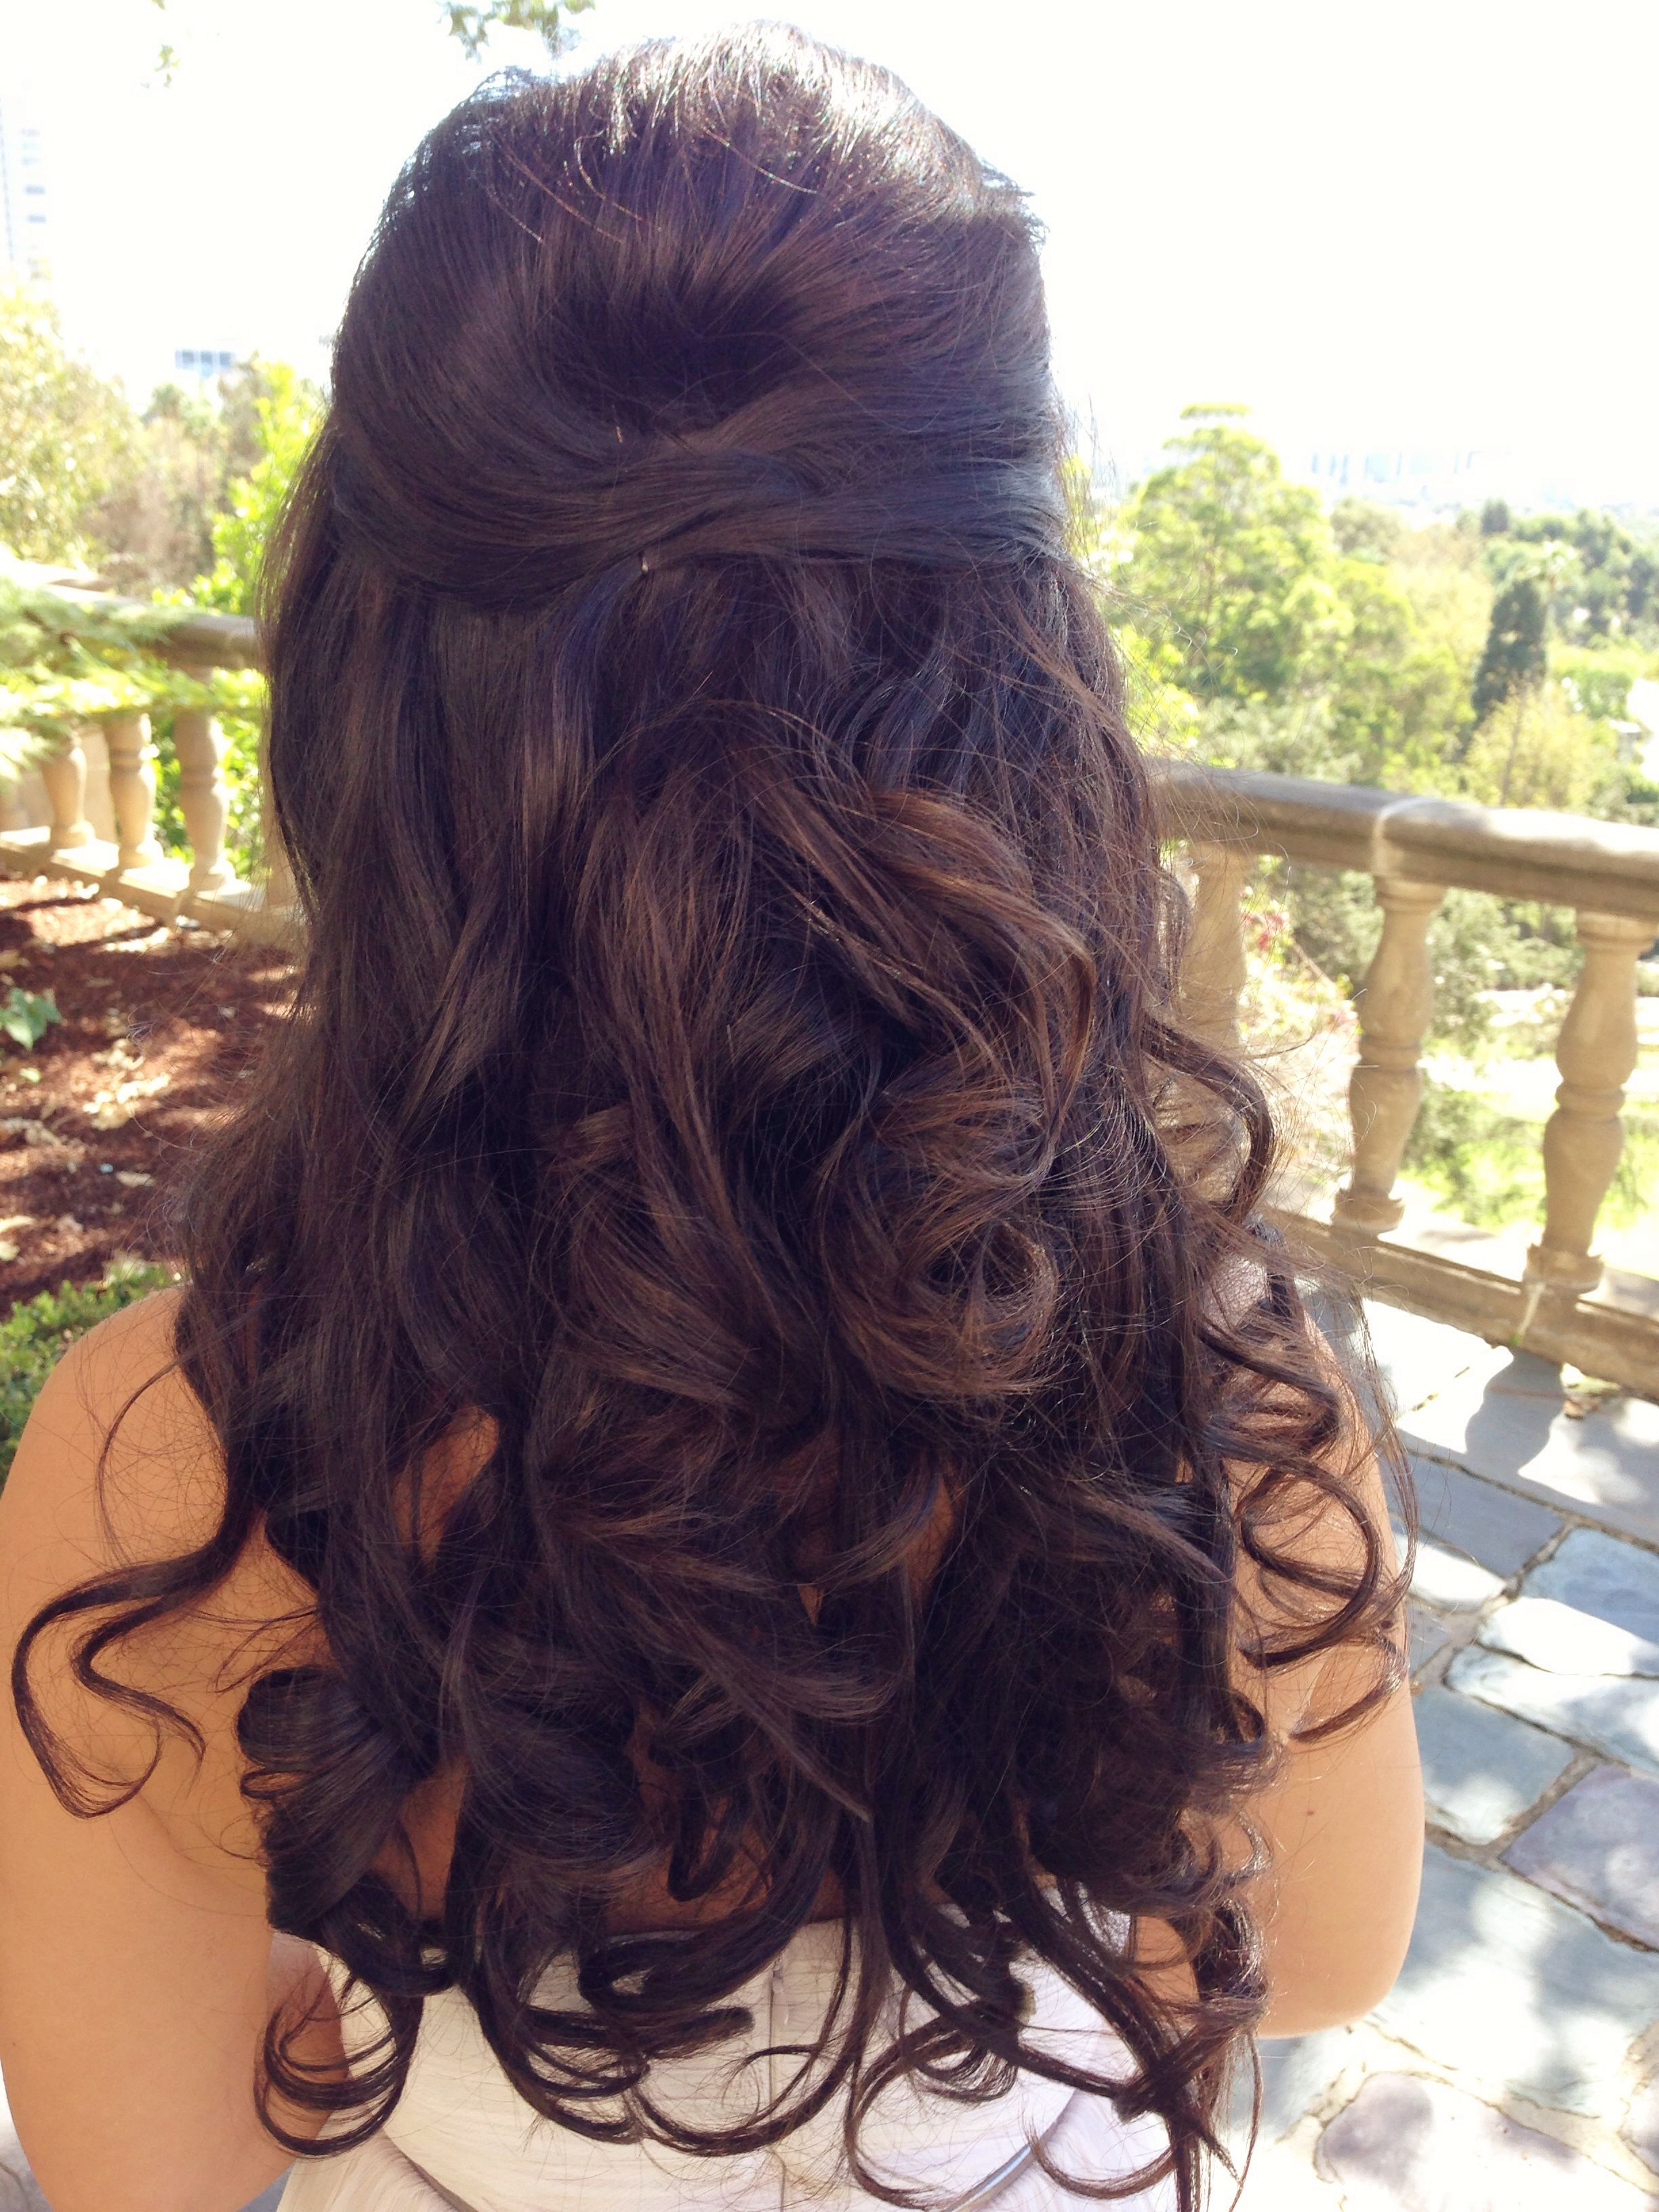 wedding hair, long hair curly half up half down | frances